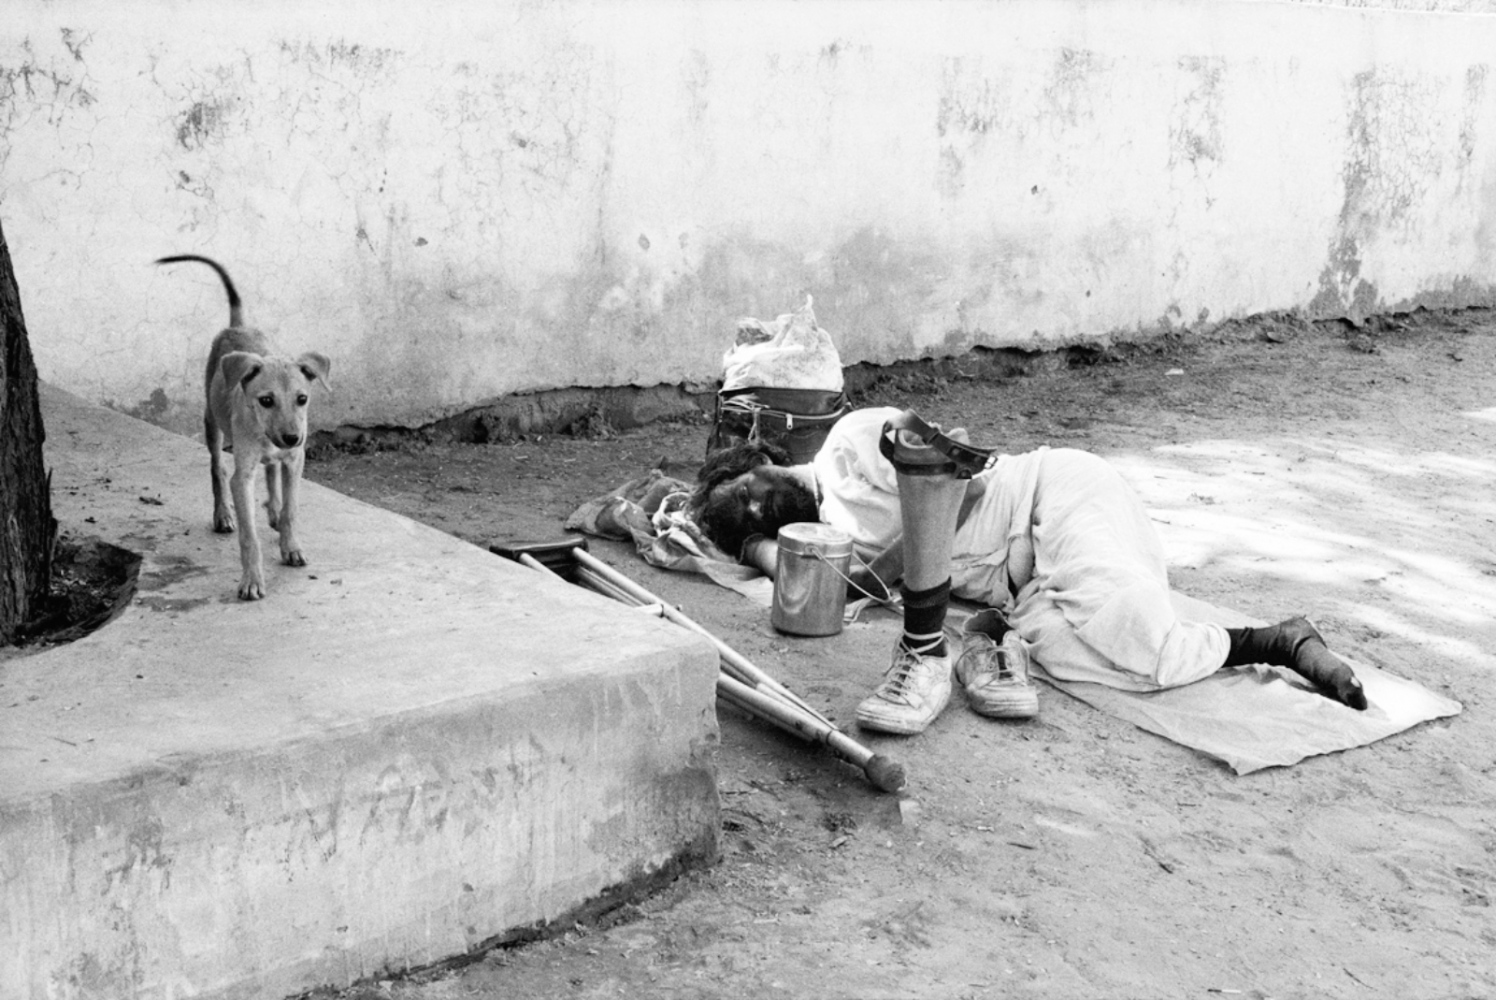 Sleeping Amputee, Pushkar, India, November 2003